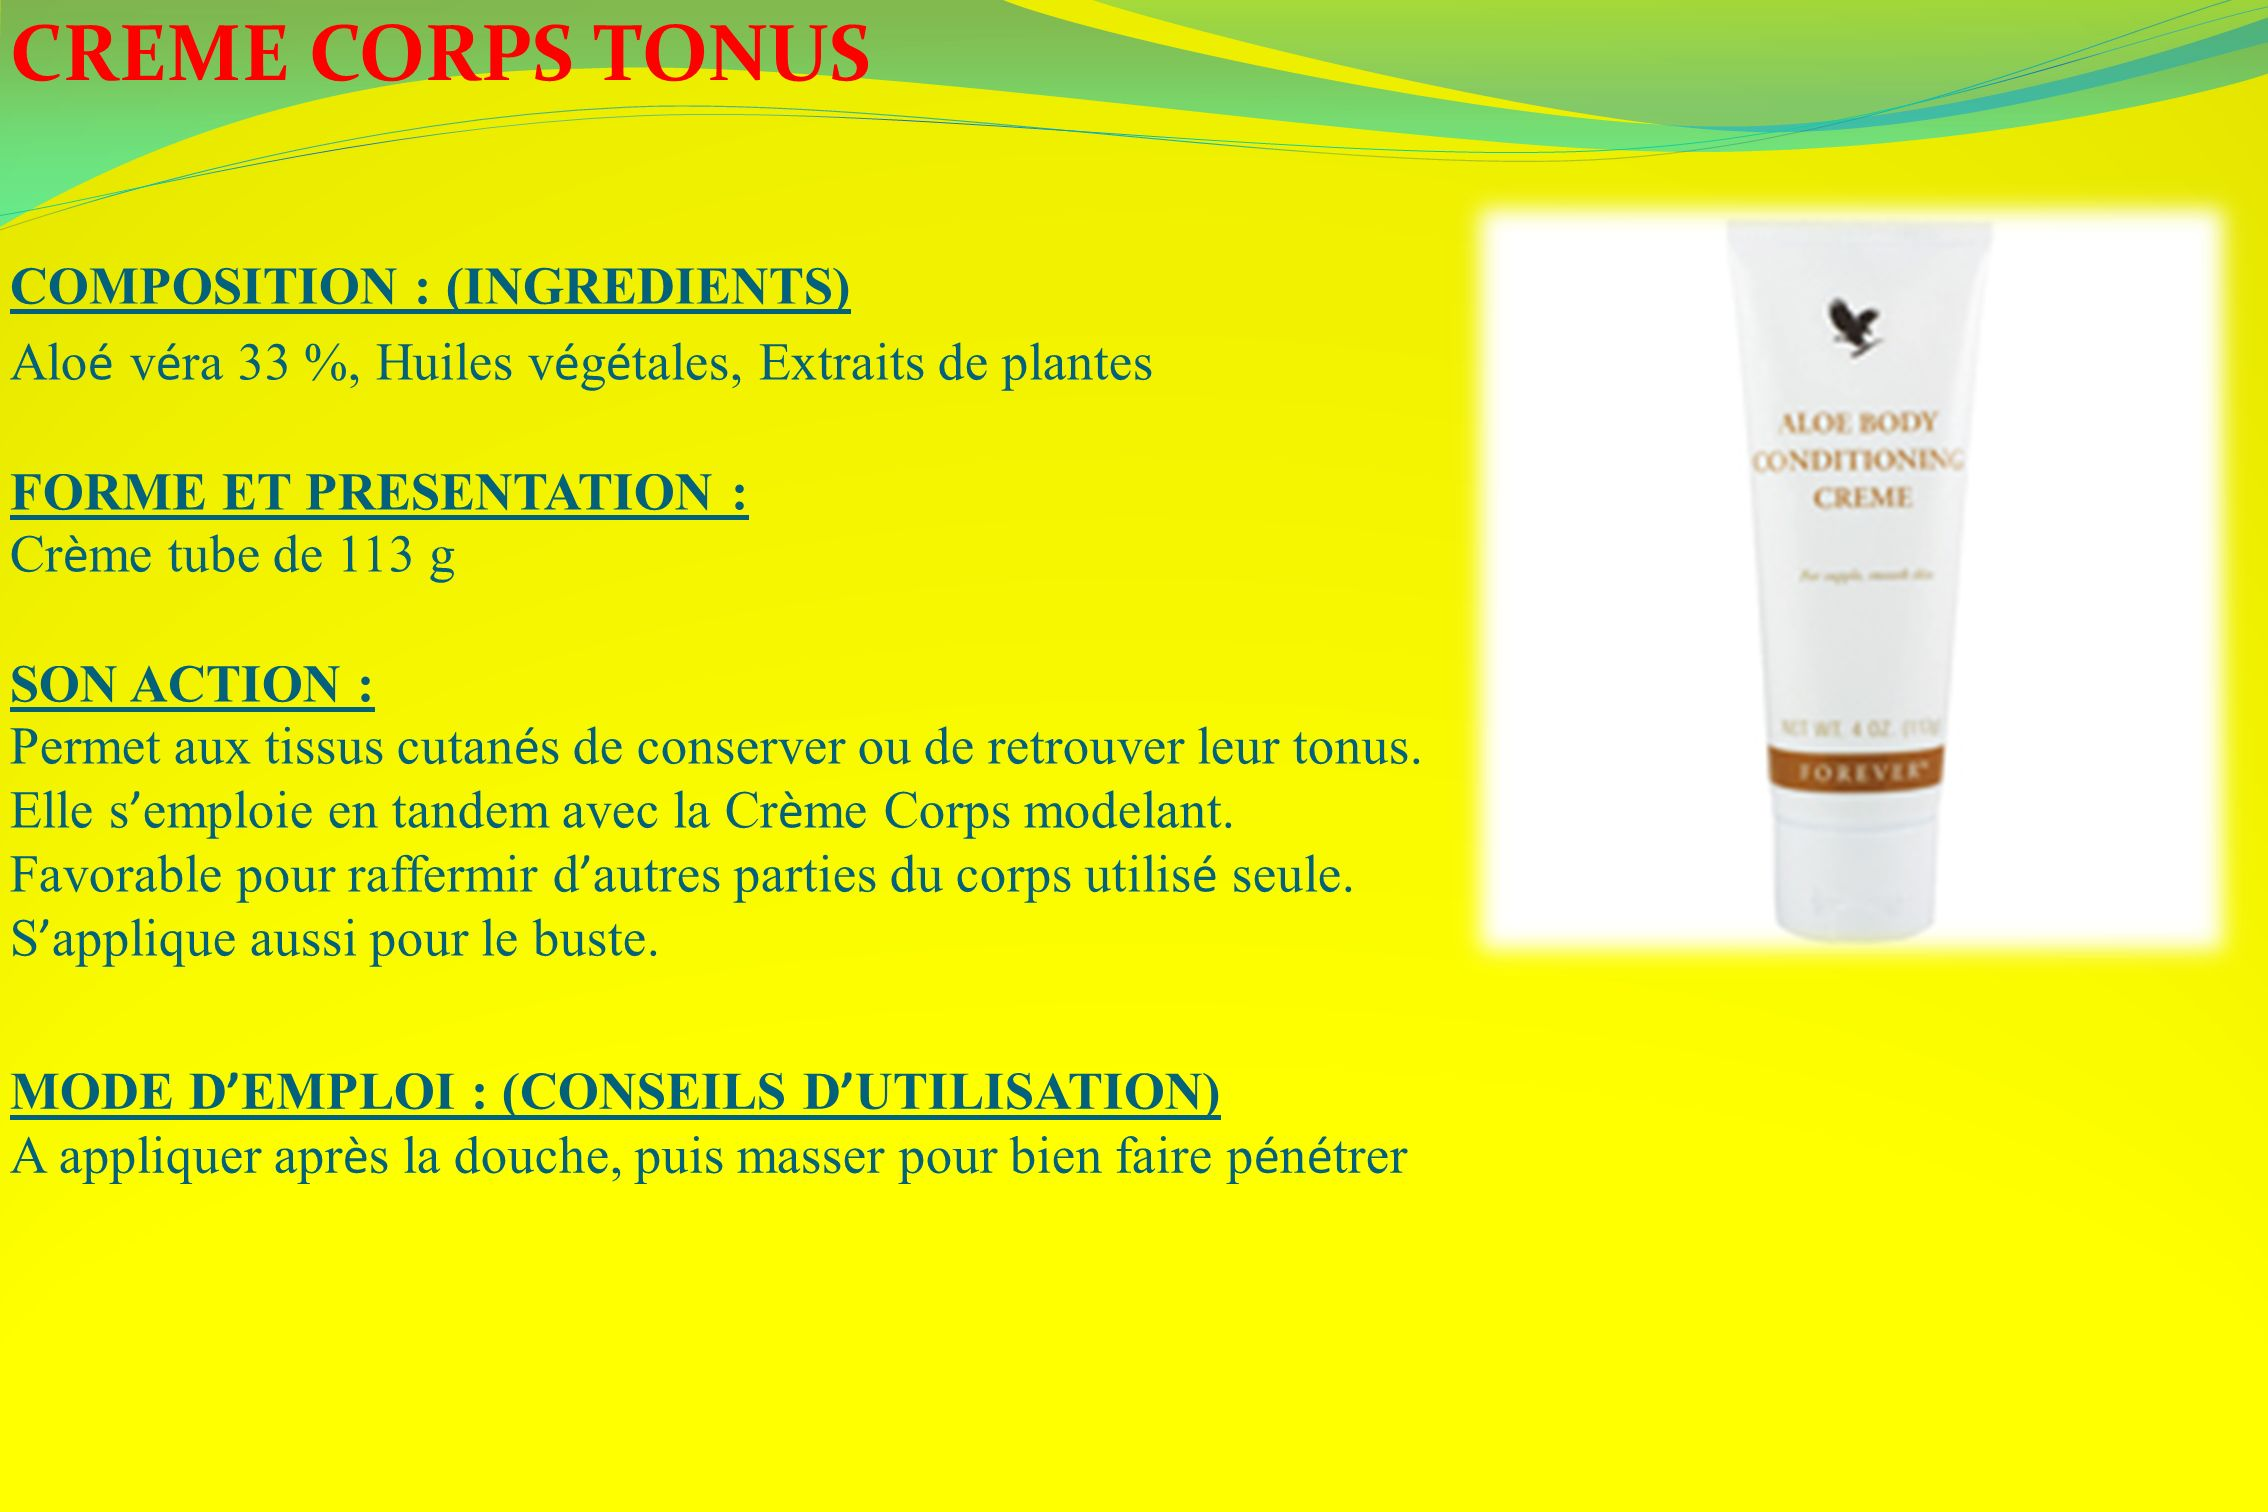 CREME CORPS TONUS COMPOSITION : (INGREDIENTS)